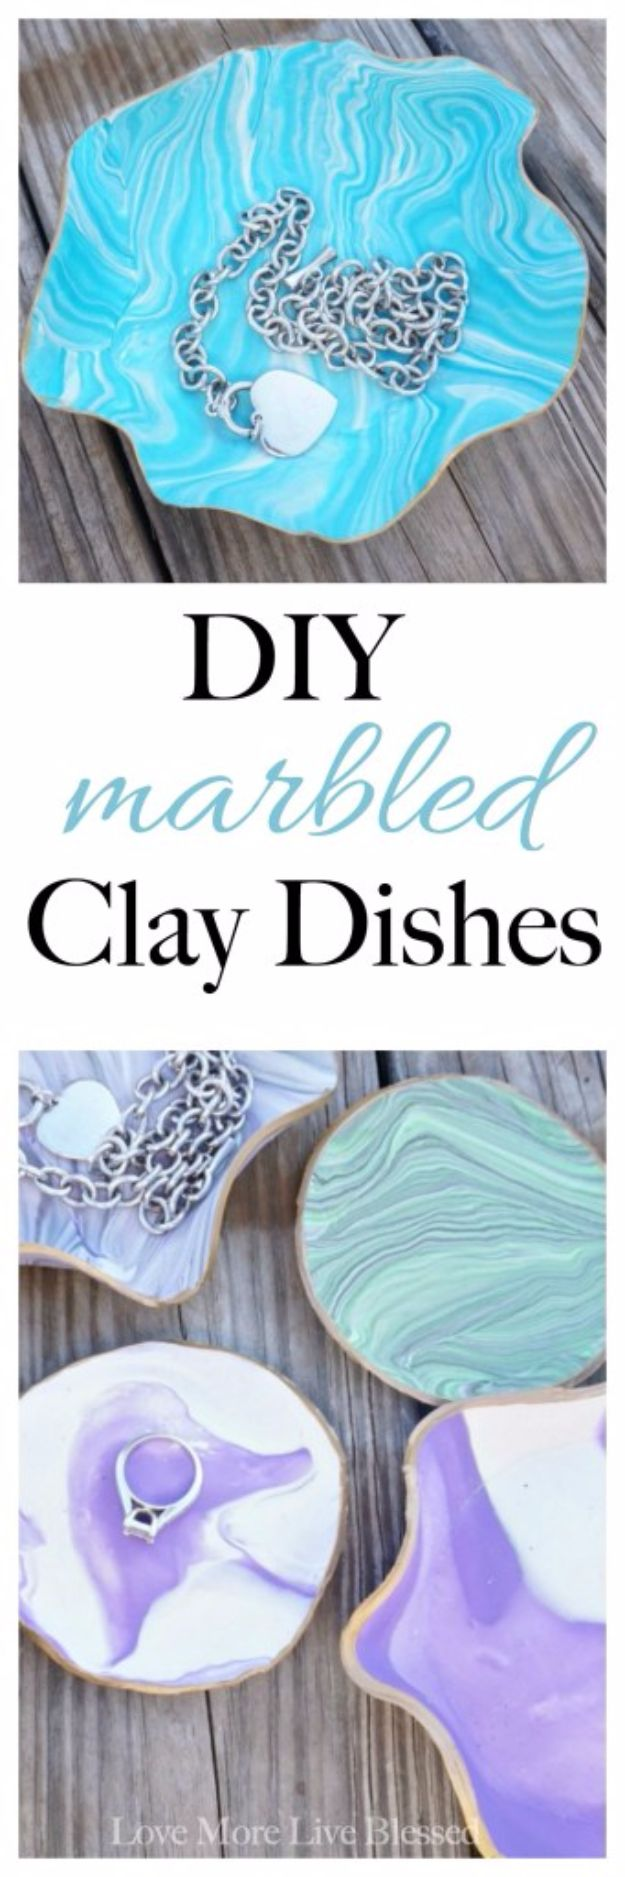 Cheap DIY Gifts and Inexpensive Homemade Christmas Gift Ideas for People on A Budget - DIY Marbled Clay Dishes - To Make These Cool Presents Instead of Buying for the Holidays - Easy and Low Cost Gifts for Mom, Dad, Friends and Family - Quick Dollar Store Crafts and Projects for Xmas Gift Giving Parties - Step by Step Tutorials and Instructions http://diyjoy.com/cheap-holiday-gift-ideas-to-make